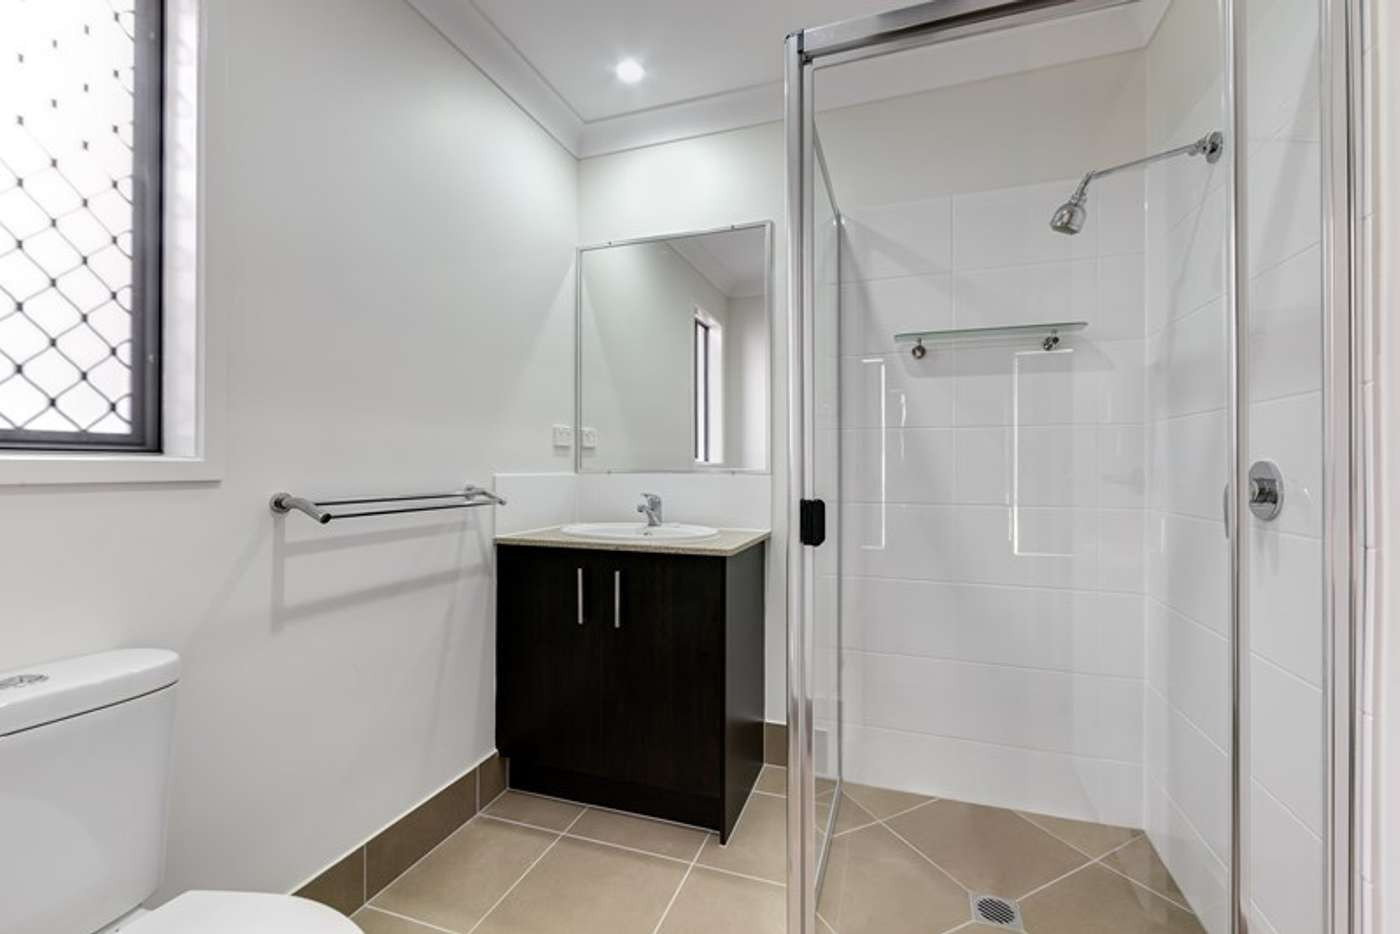 Seventh view of Homely house listing, 8 Barcoo Lane, Pelican Waters QLD 4551